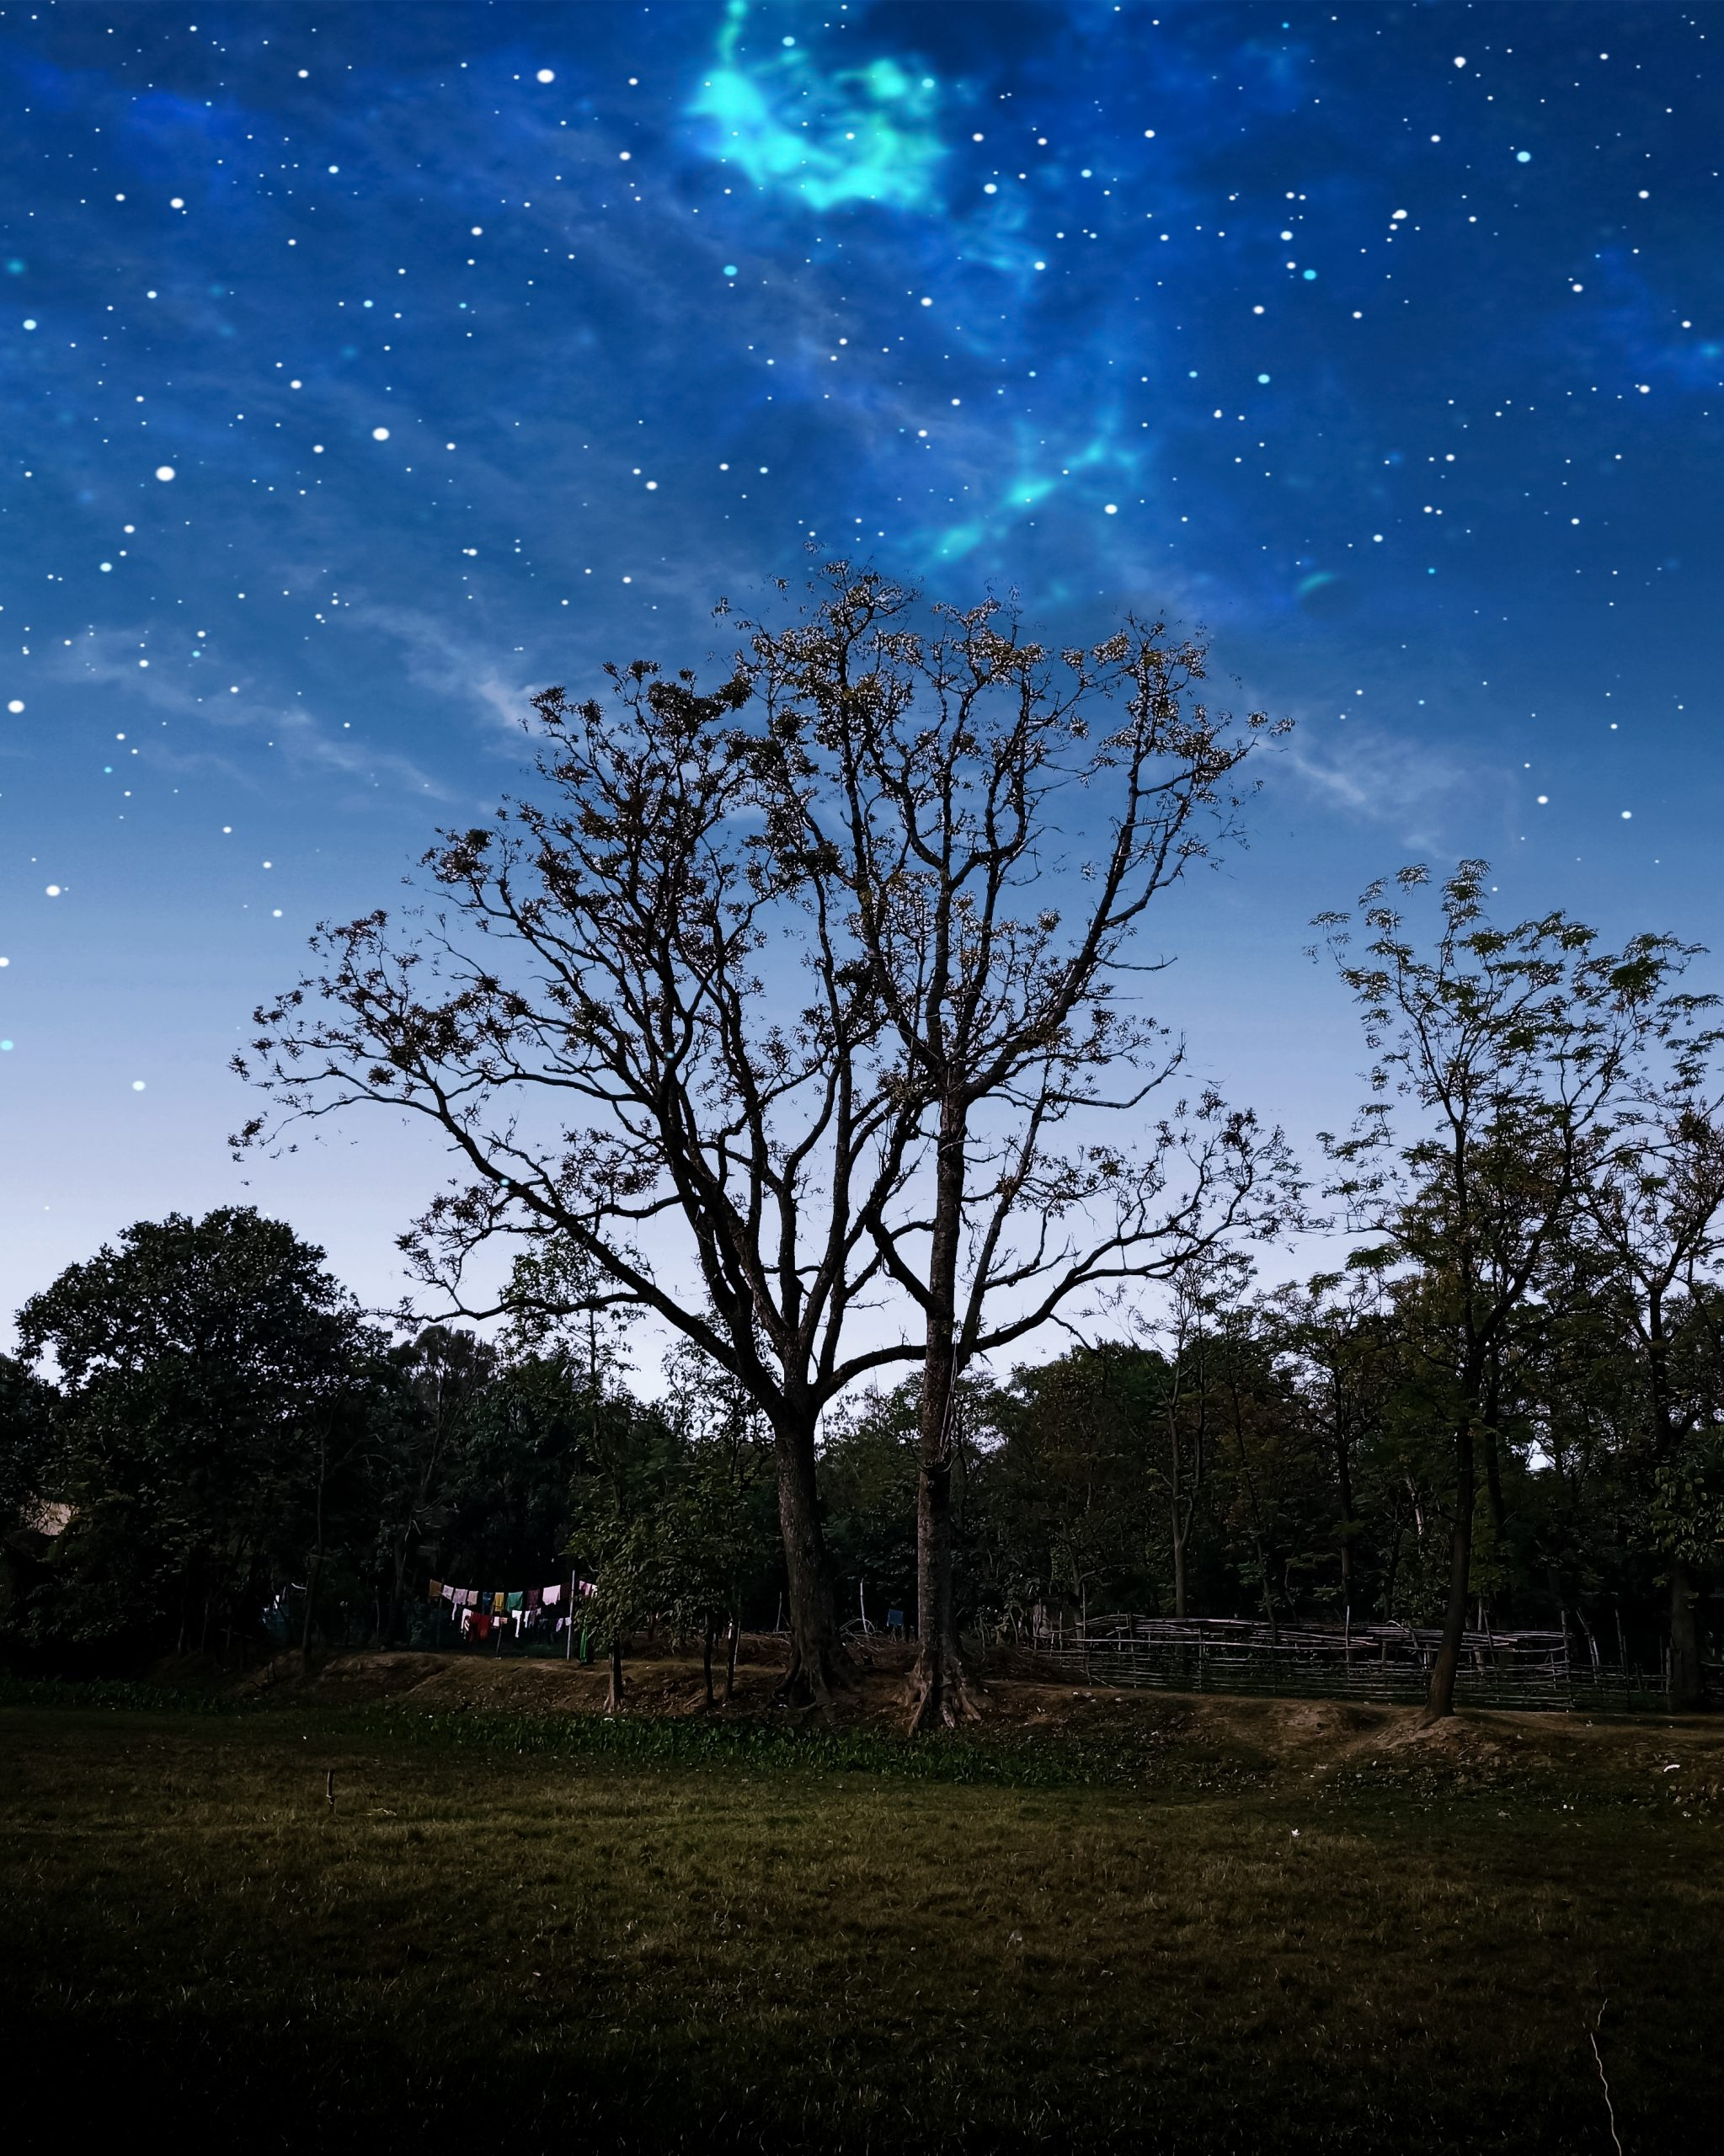 A tree and star in sky